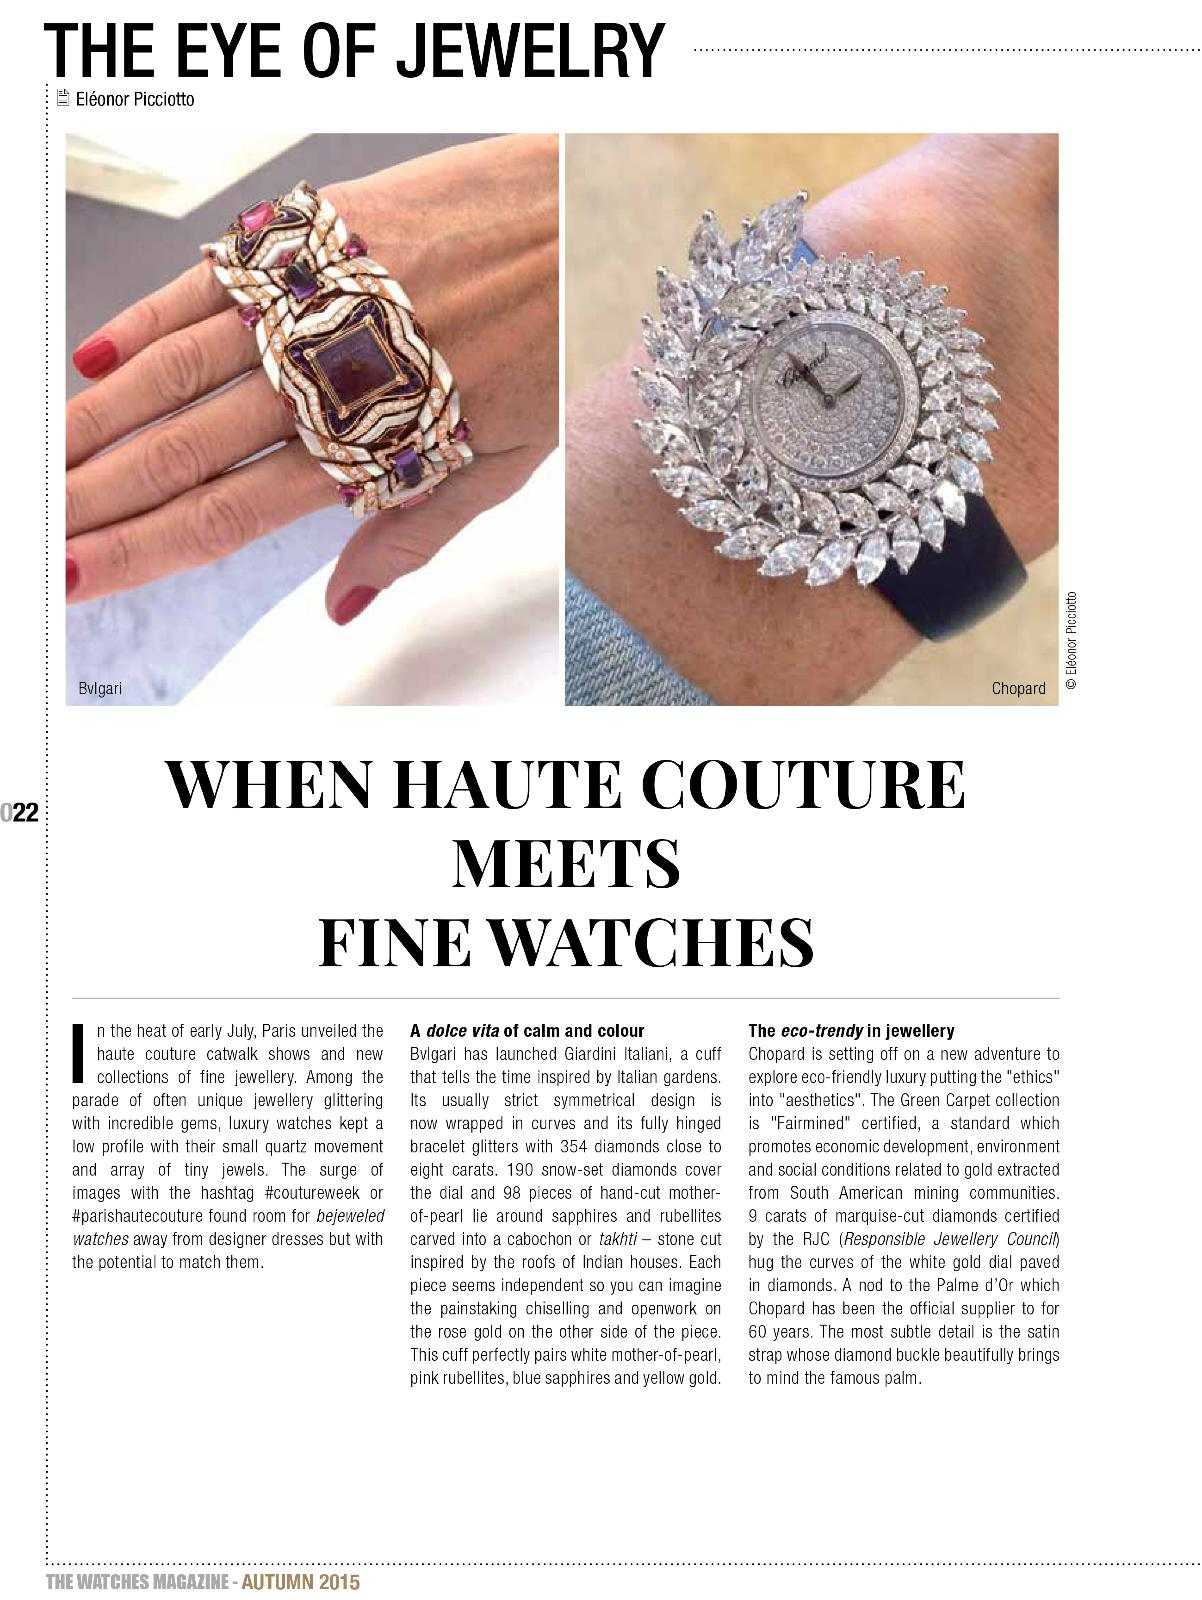 The Watches Magazine 42 the eye of jewelry